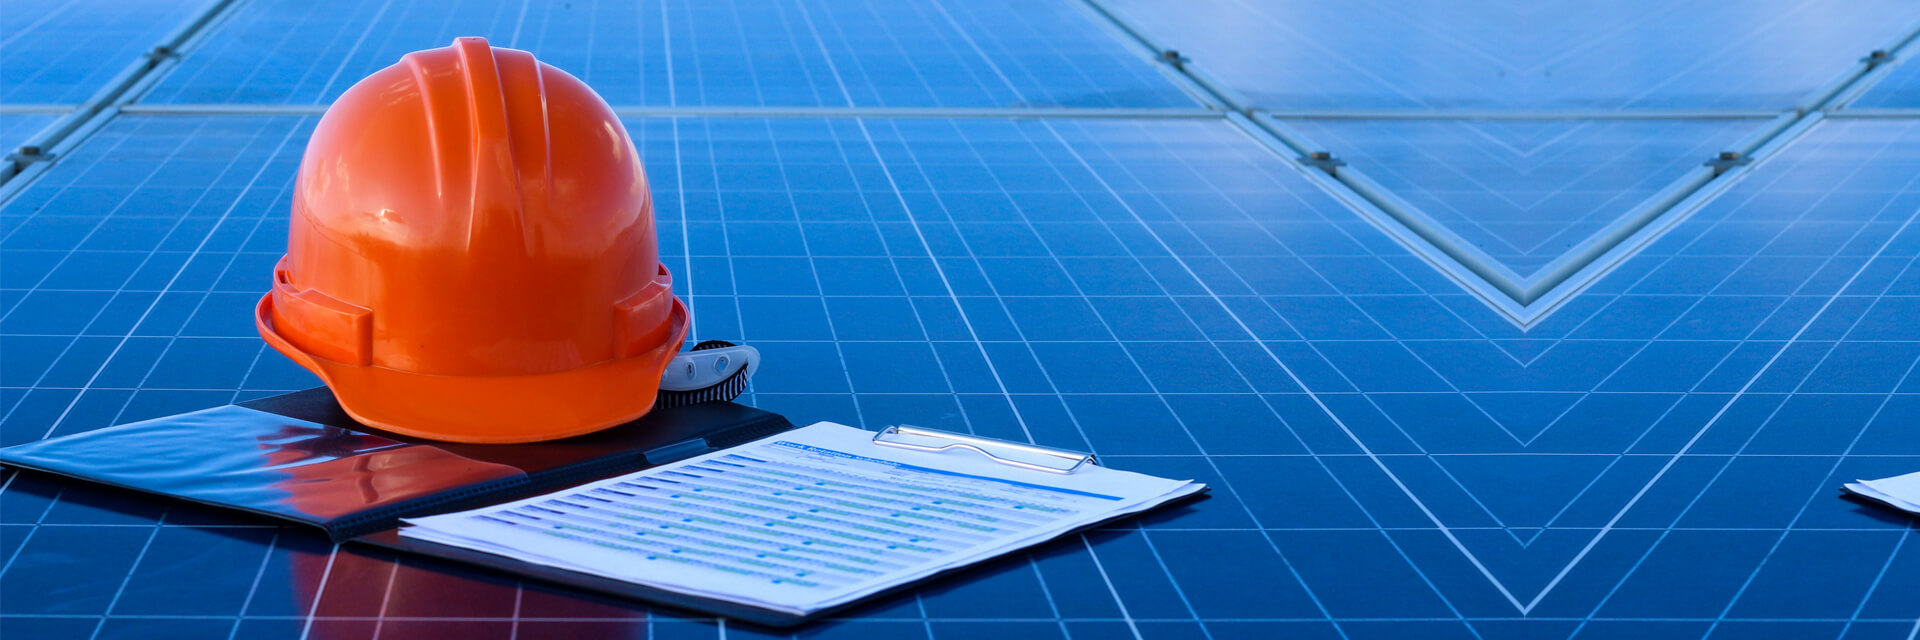 Solar engineering services